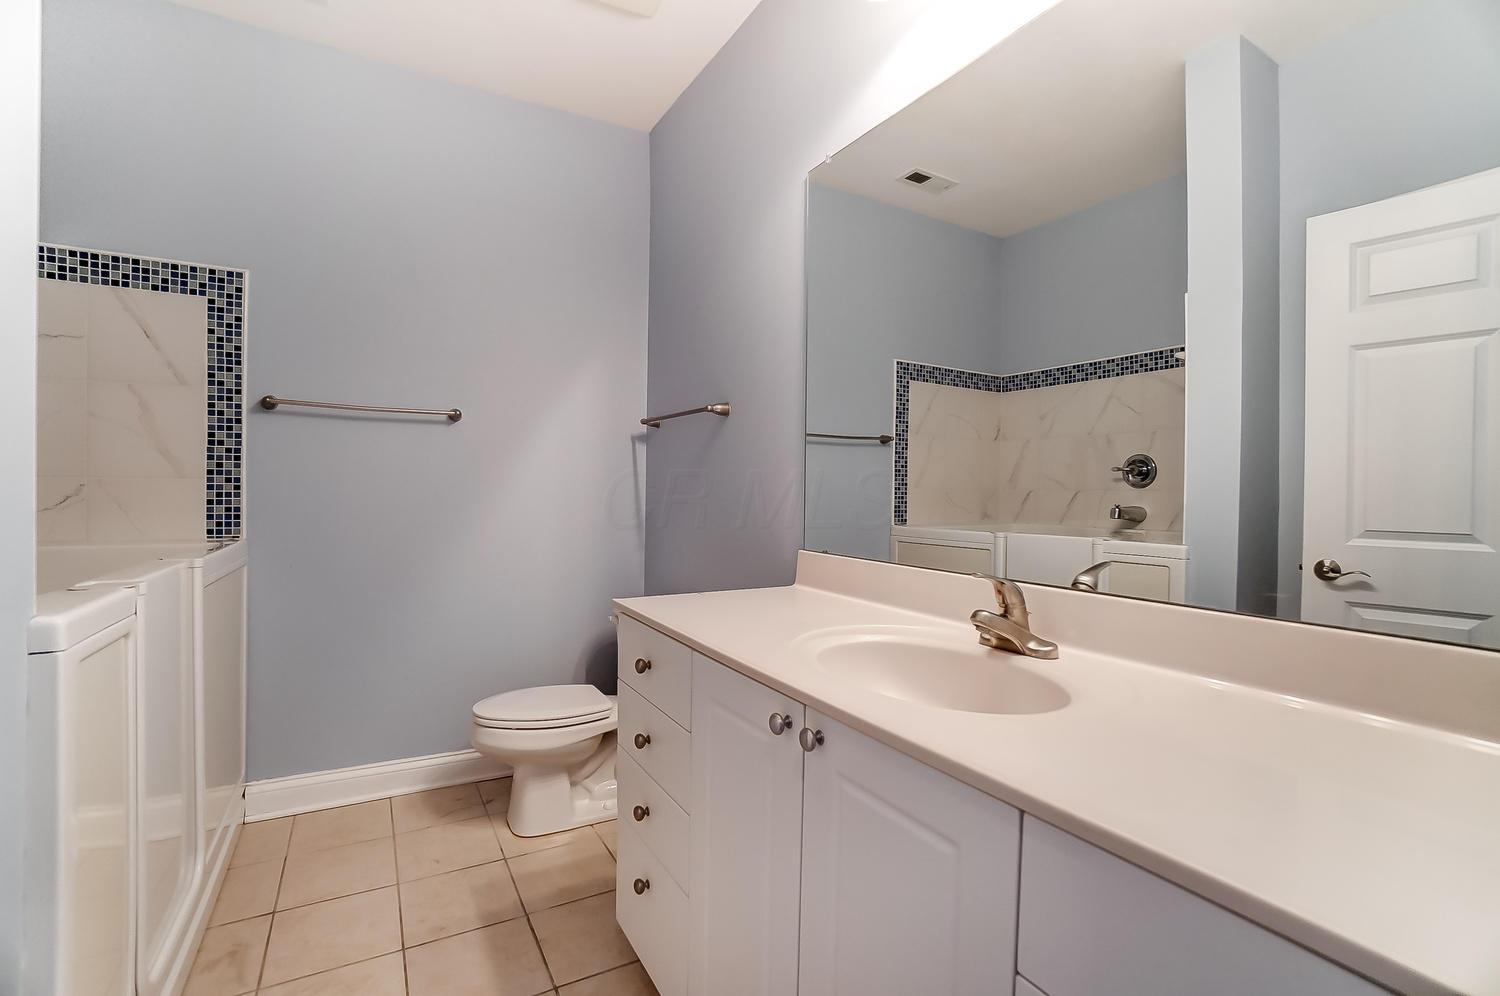 6011 Eiger Drive, Columbus, Ohio 43213, 3 Bedrooms Bedrooms, ,2 BathroomsBathrooms,Residential,For Sale,Eiger,220041122